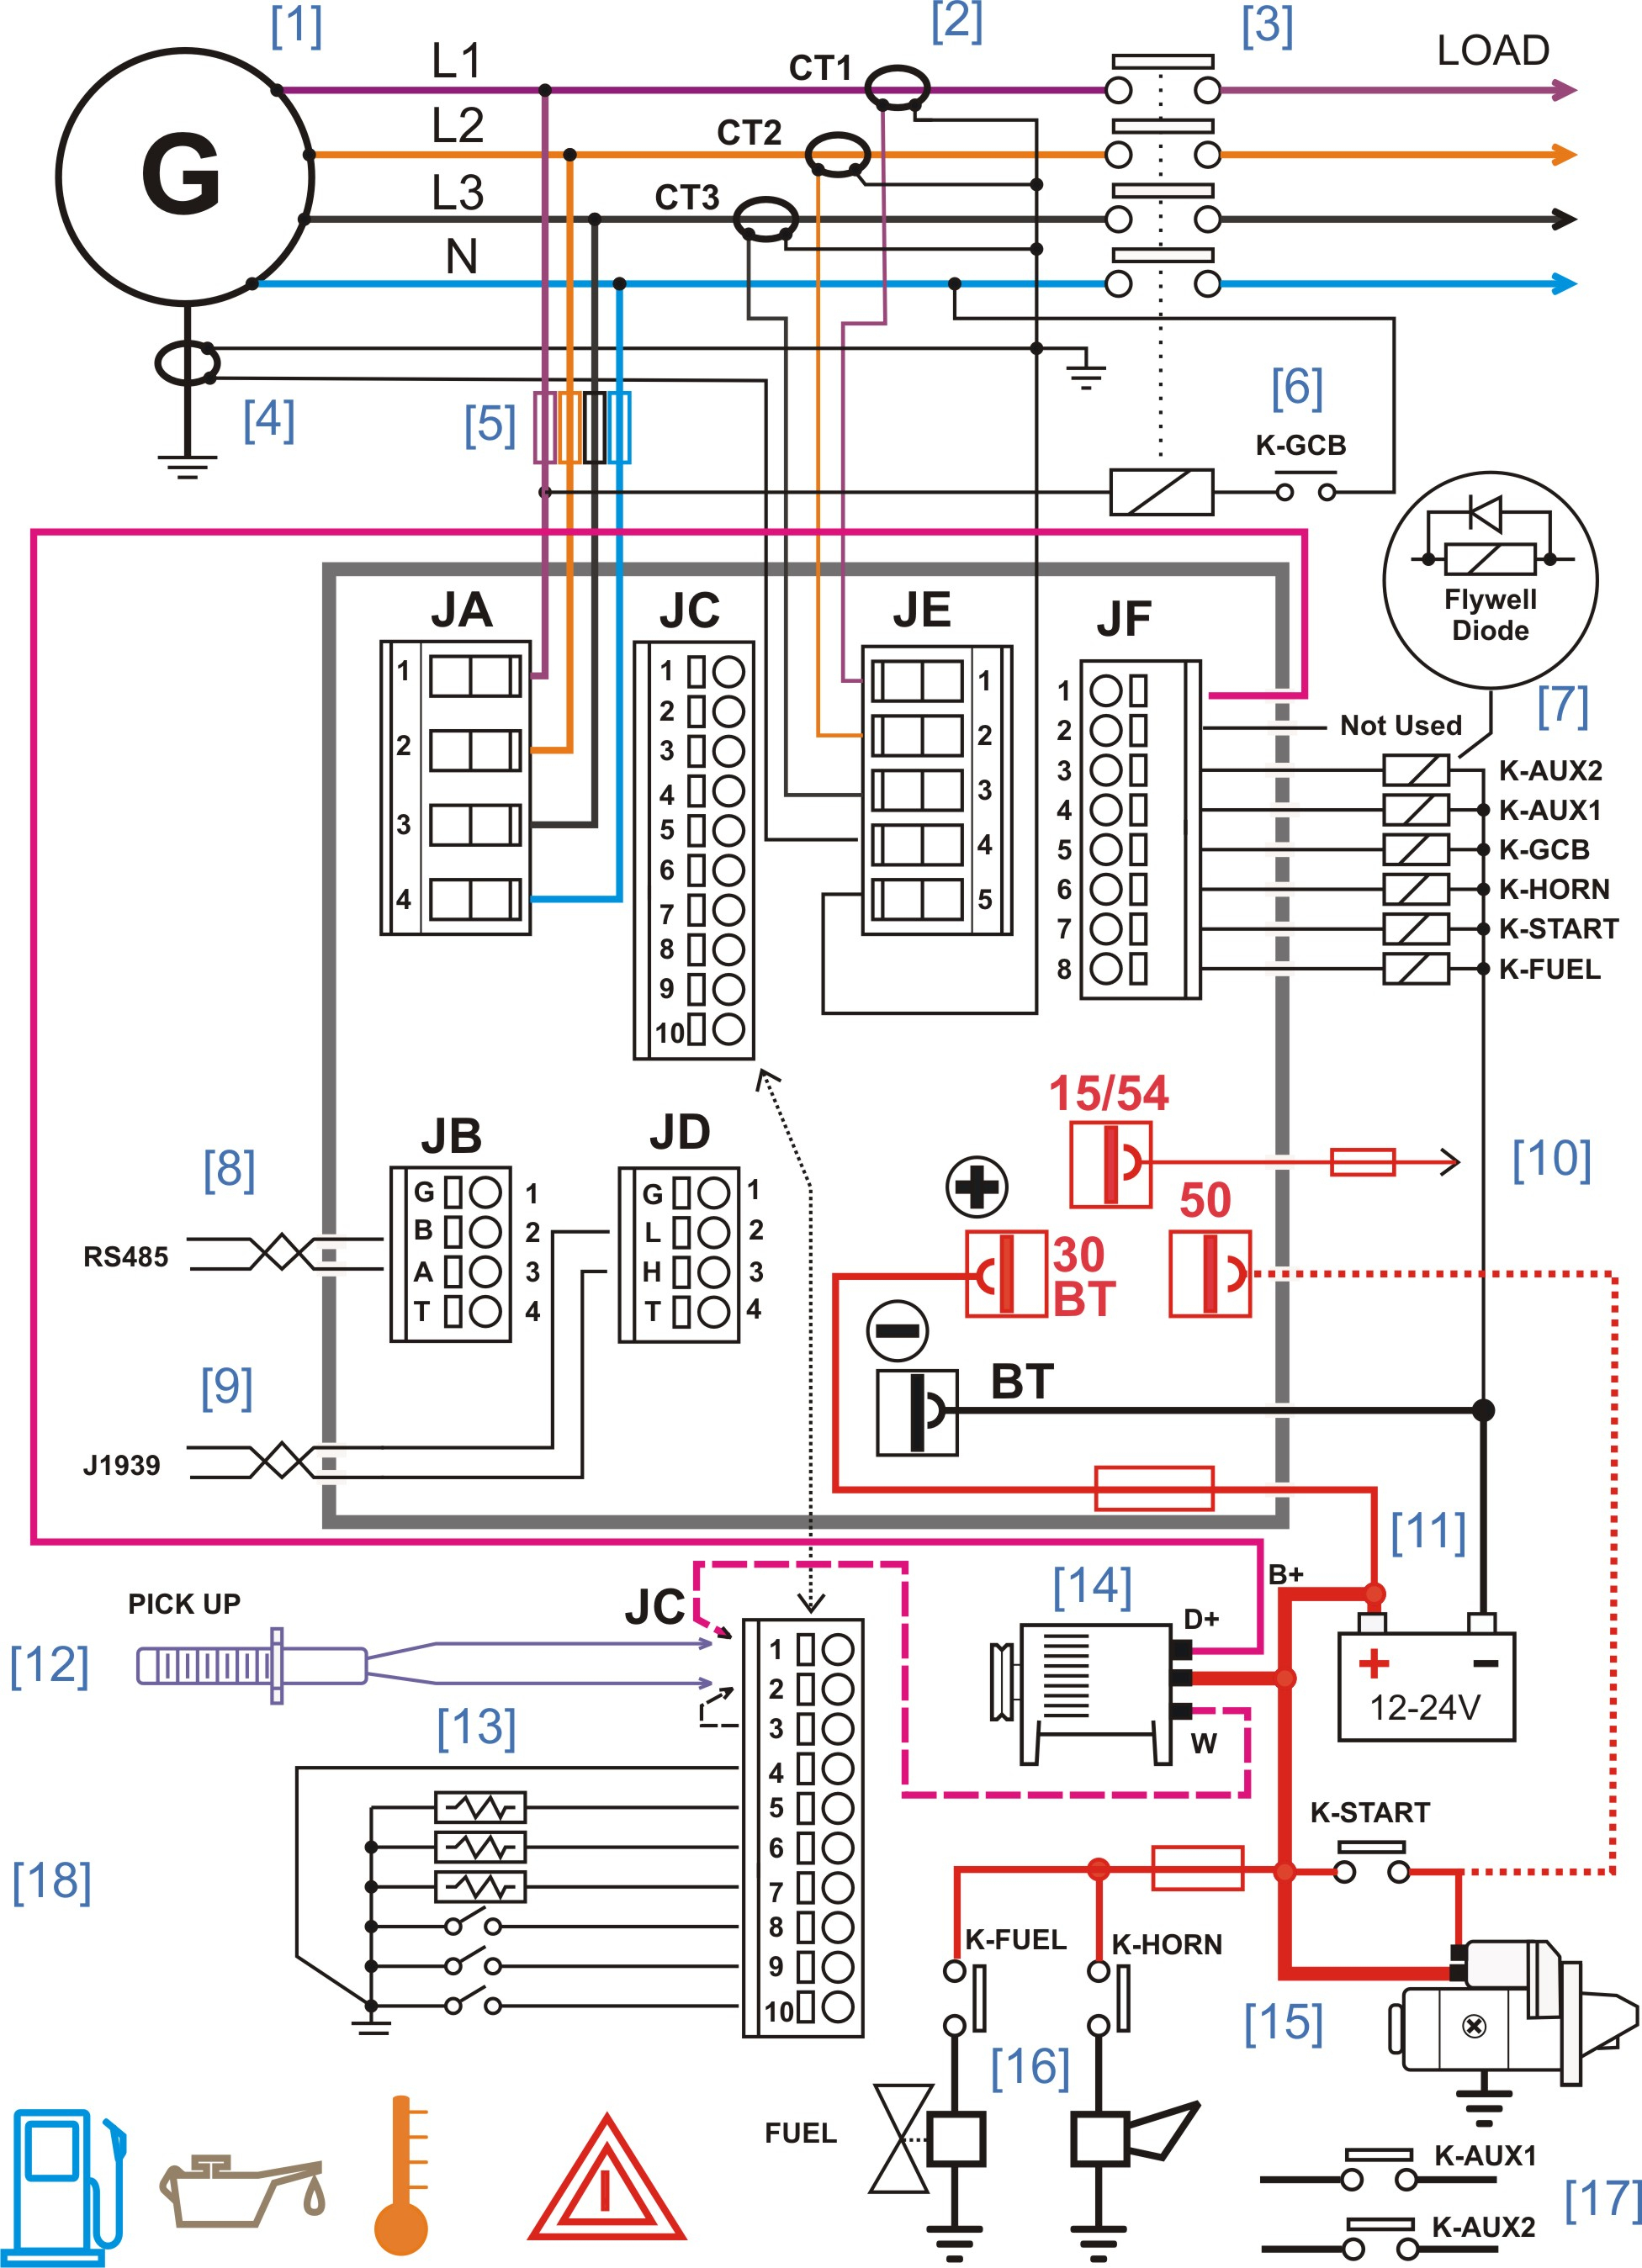 wiring diagram of amf panel wiring diagram Reading Wiring Drawings olympian generator control panel wiring diagram wiring diagram